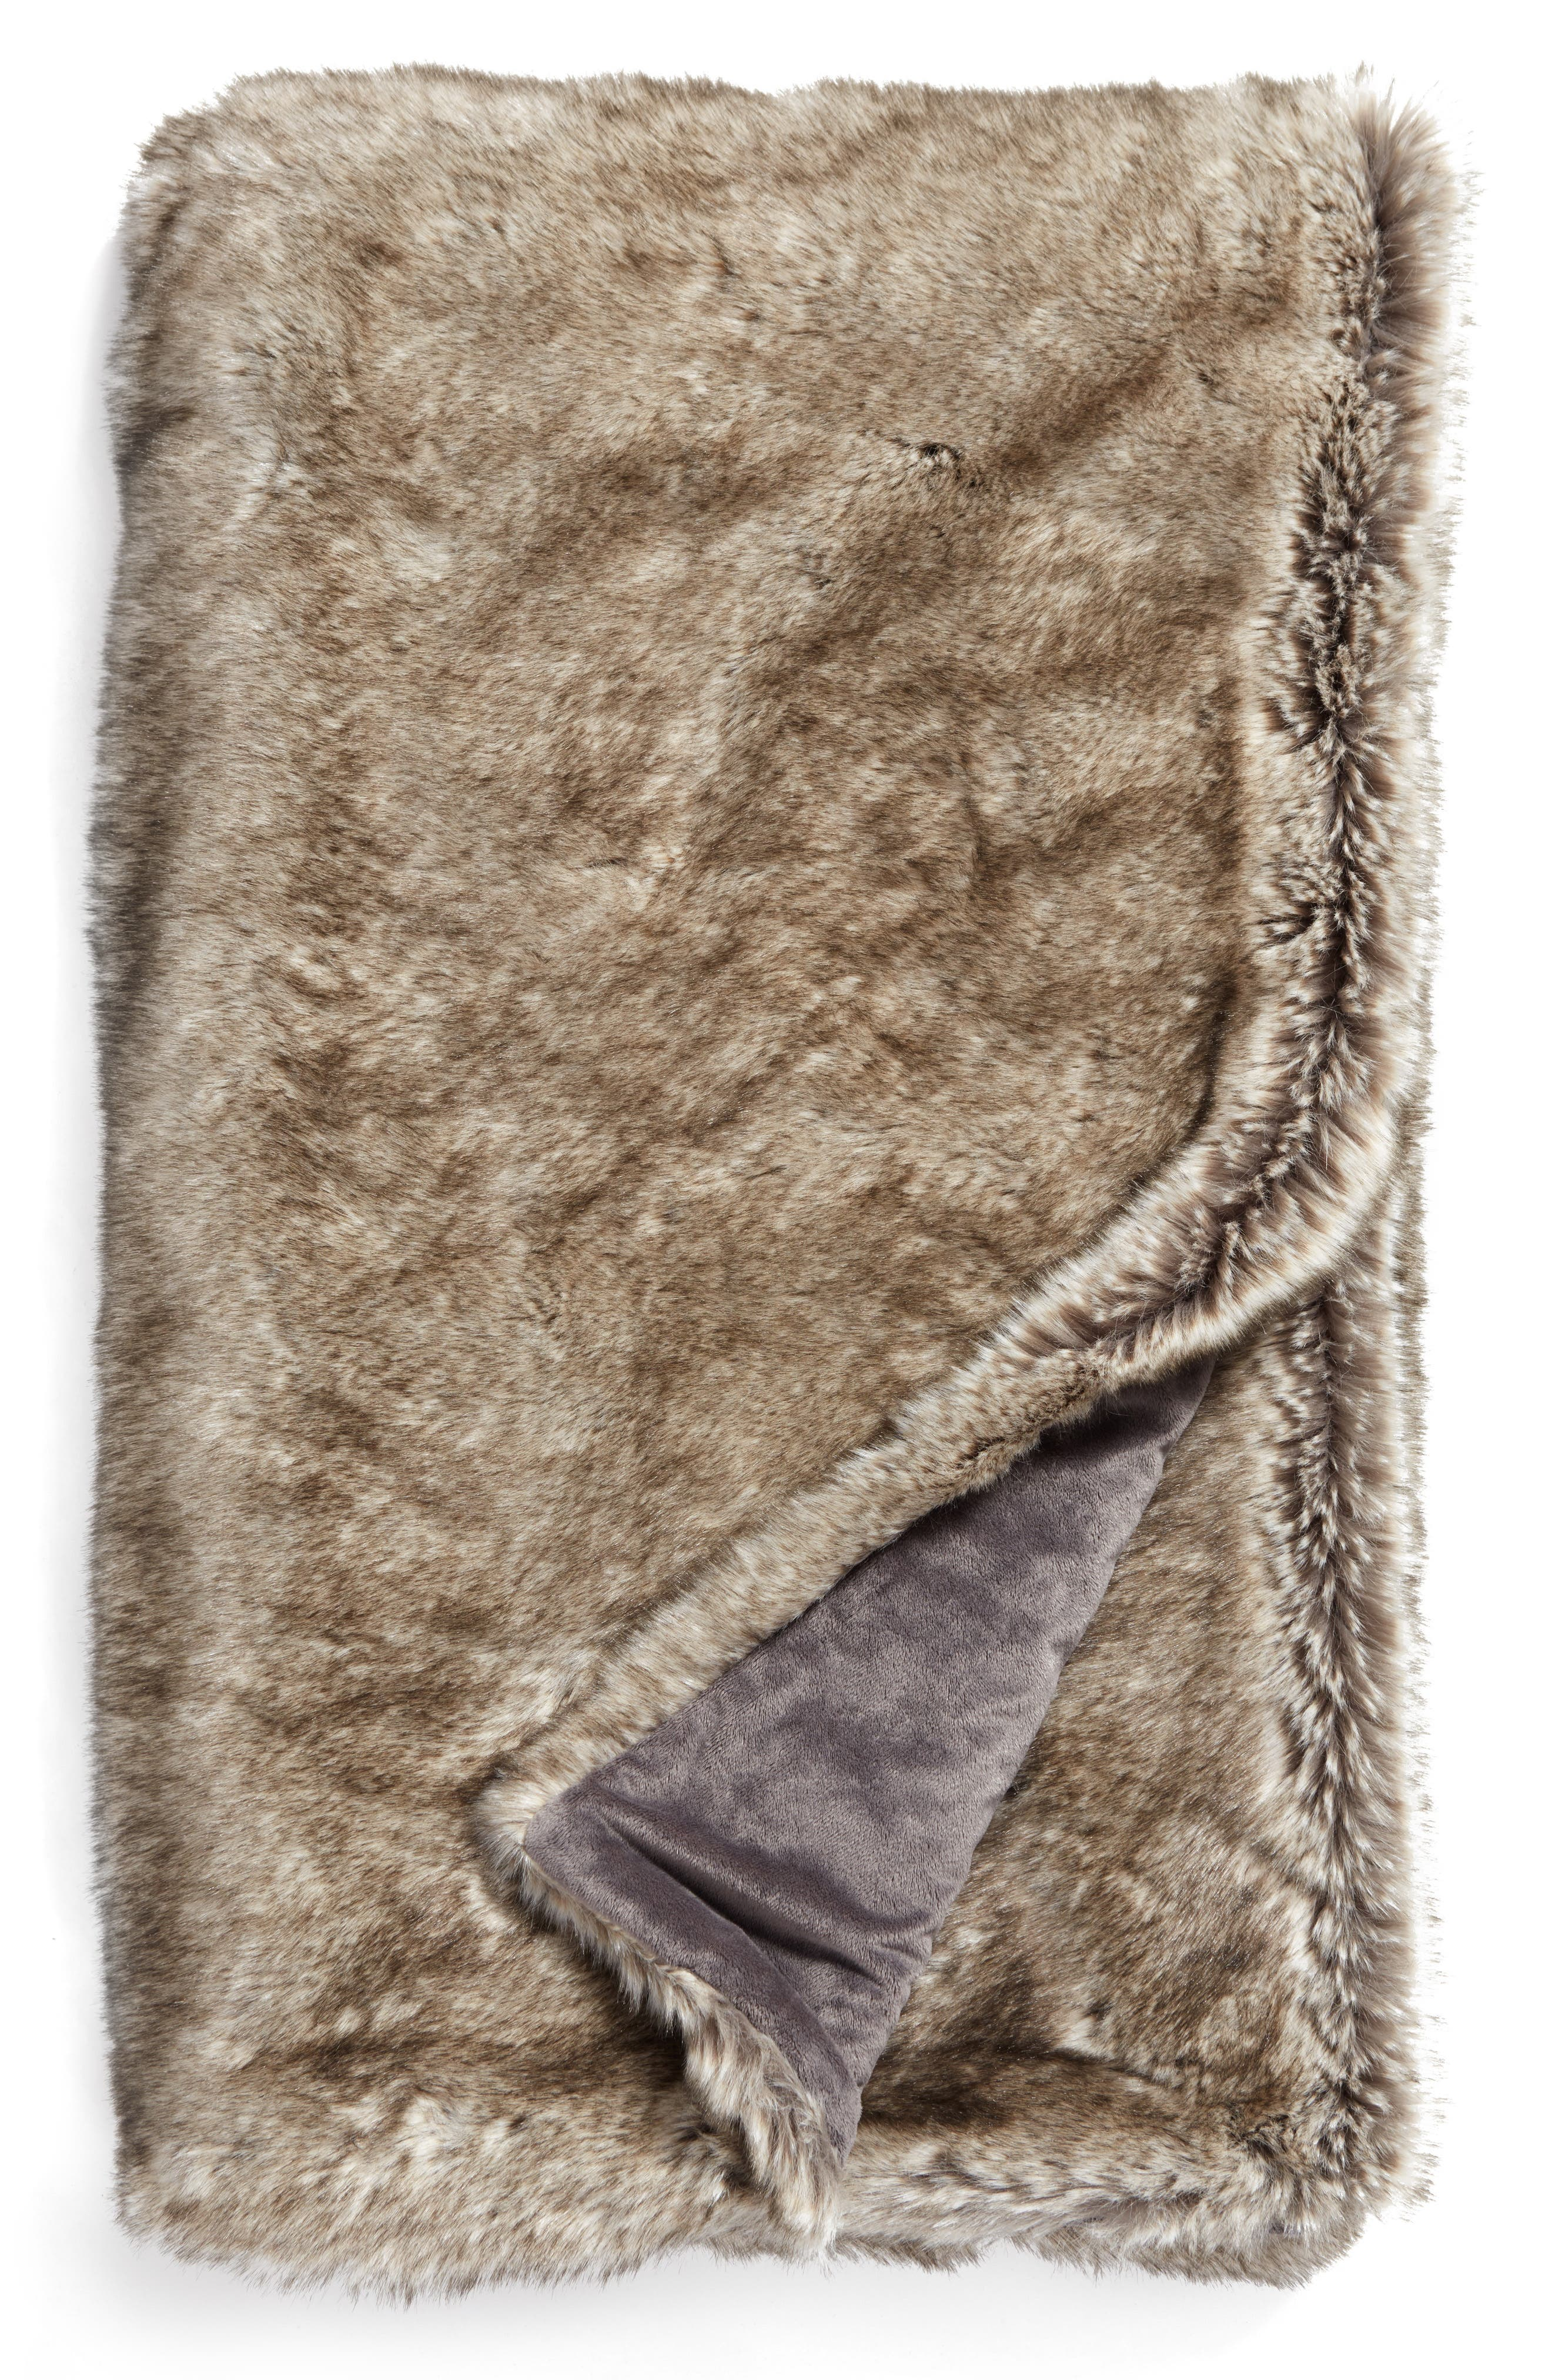 main image nordstrom at home cuddle up faux fur throw blanket - Faux Fur Throws